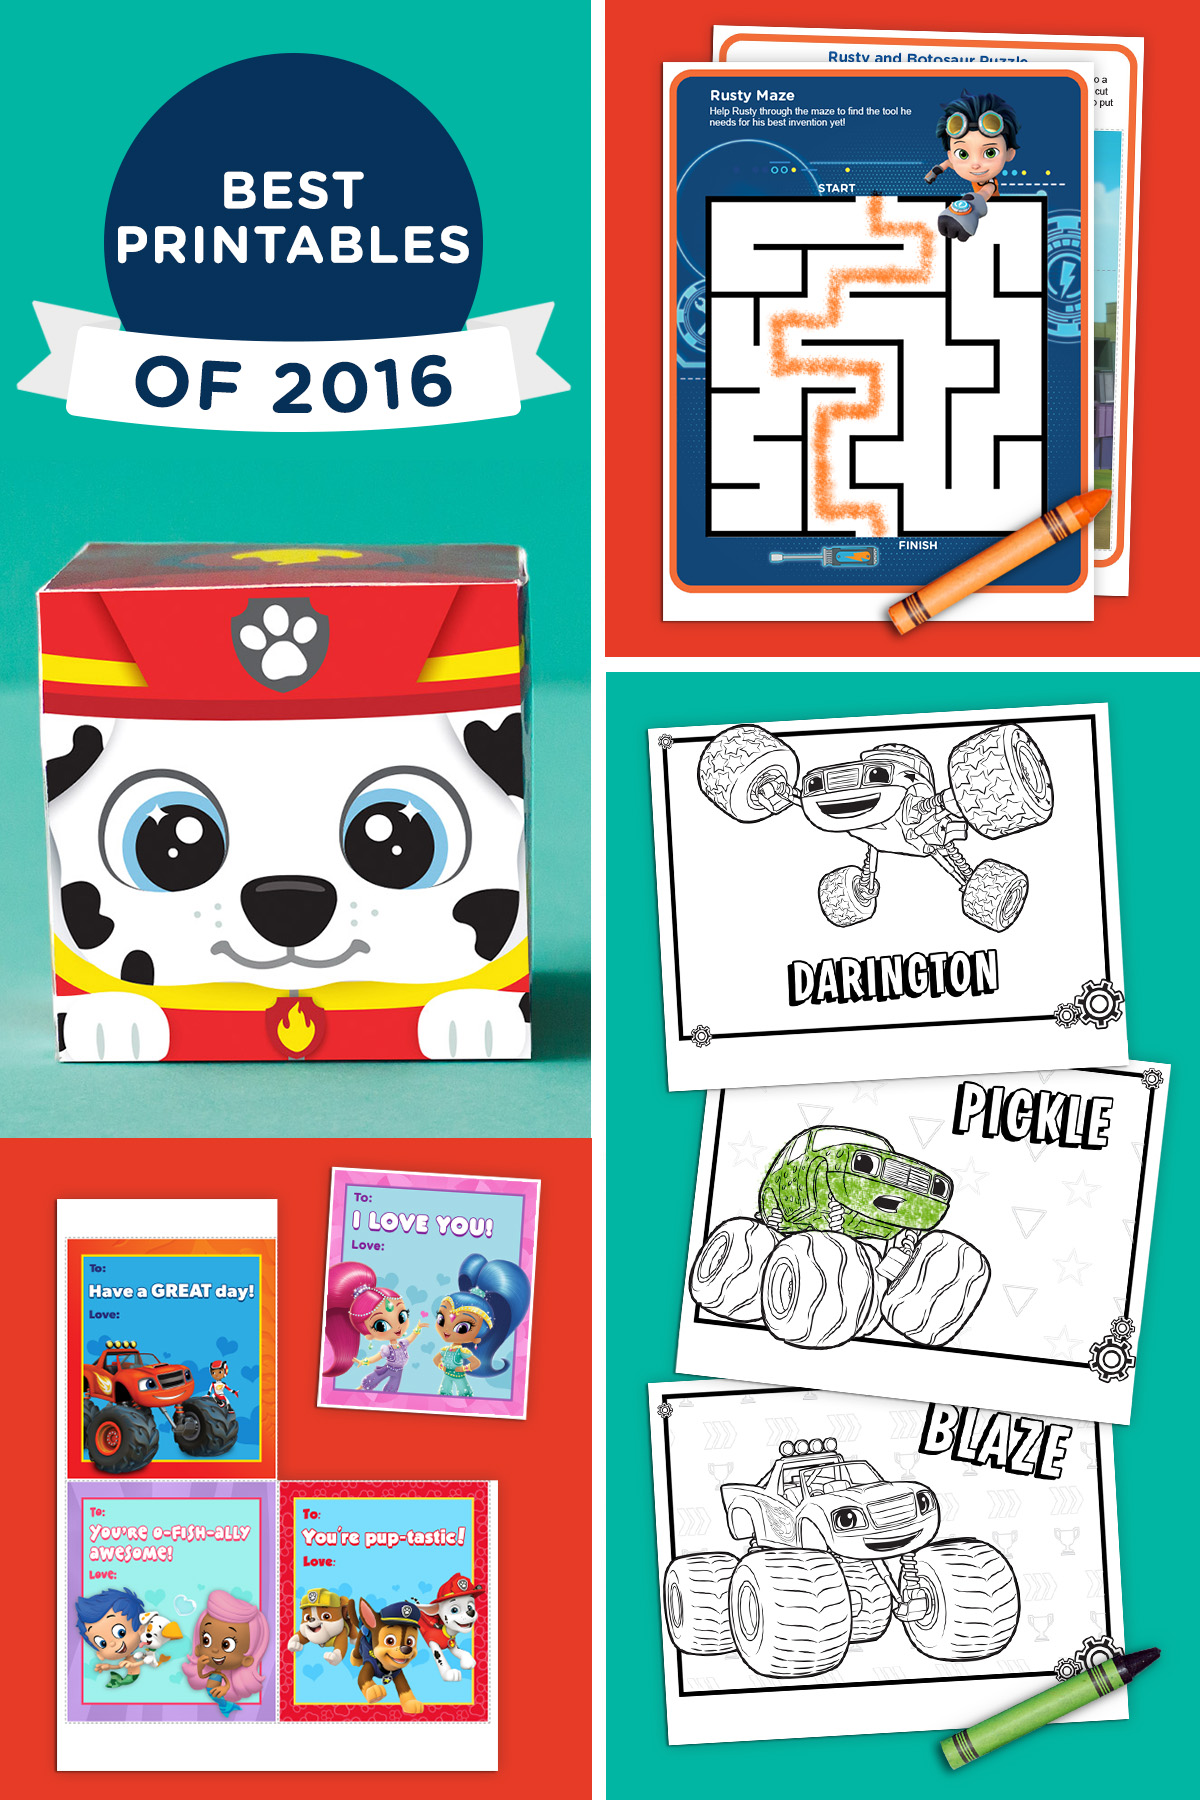 The Best Nick Jr. Printables of 2016